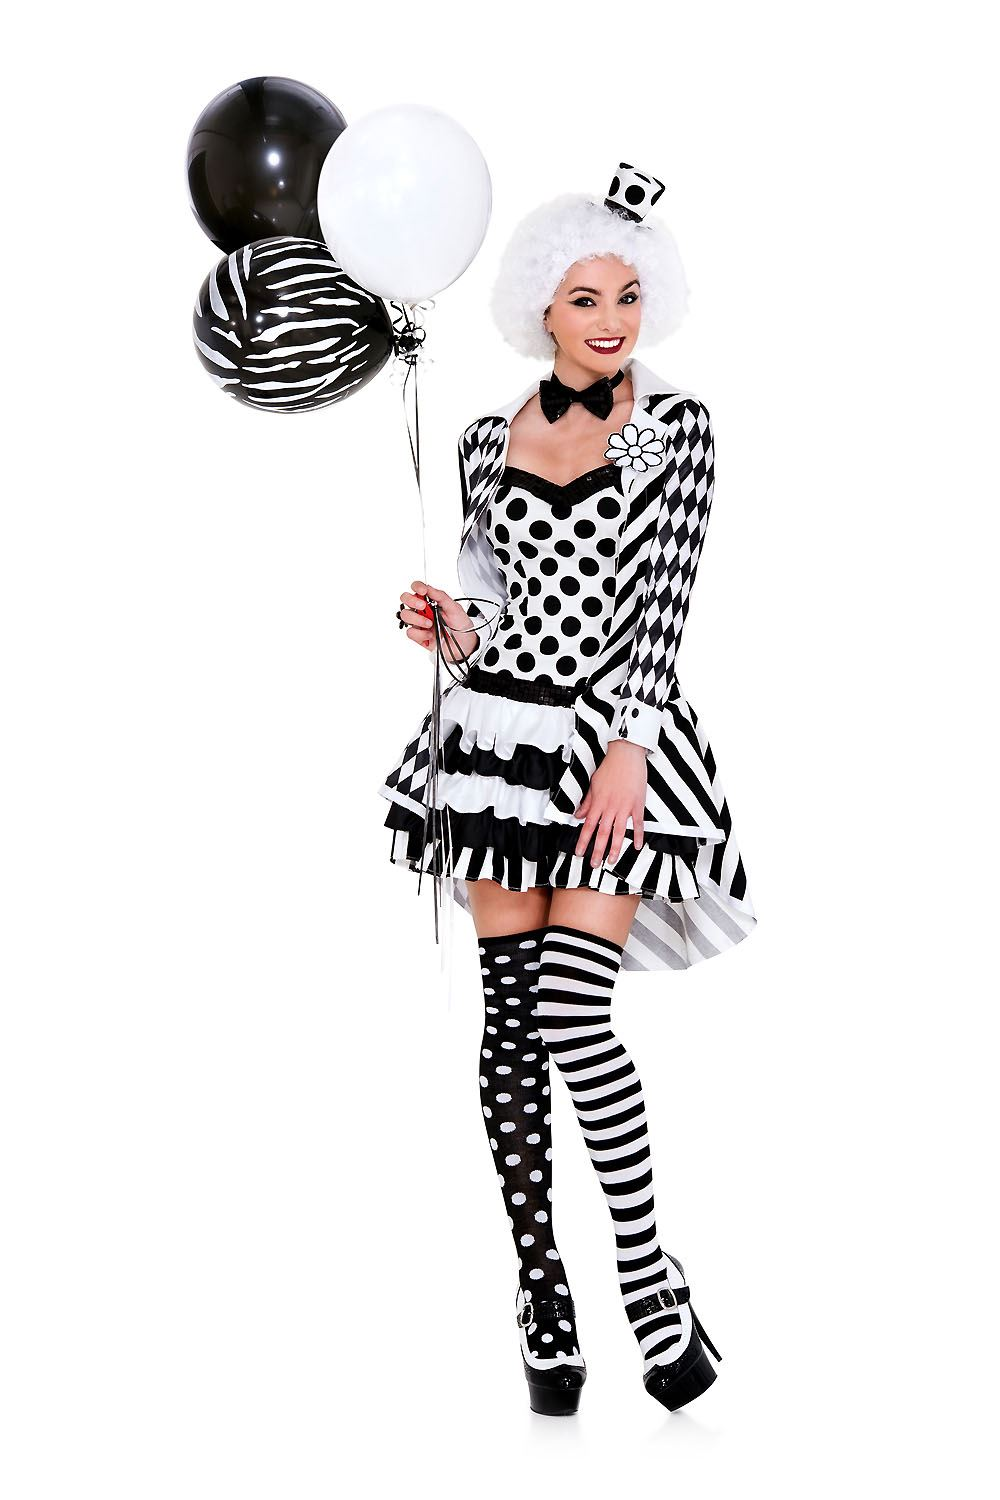 Adult Circus Damned Woman Clown Costume ...  sc 1 st  The Costume Land & Adult Circus Damned Woman Clown Costume   $43.99   The Costume Land